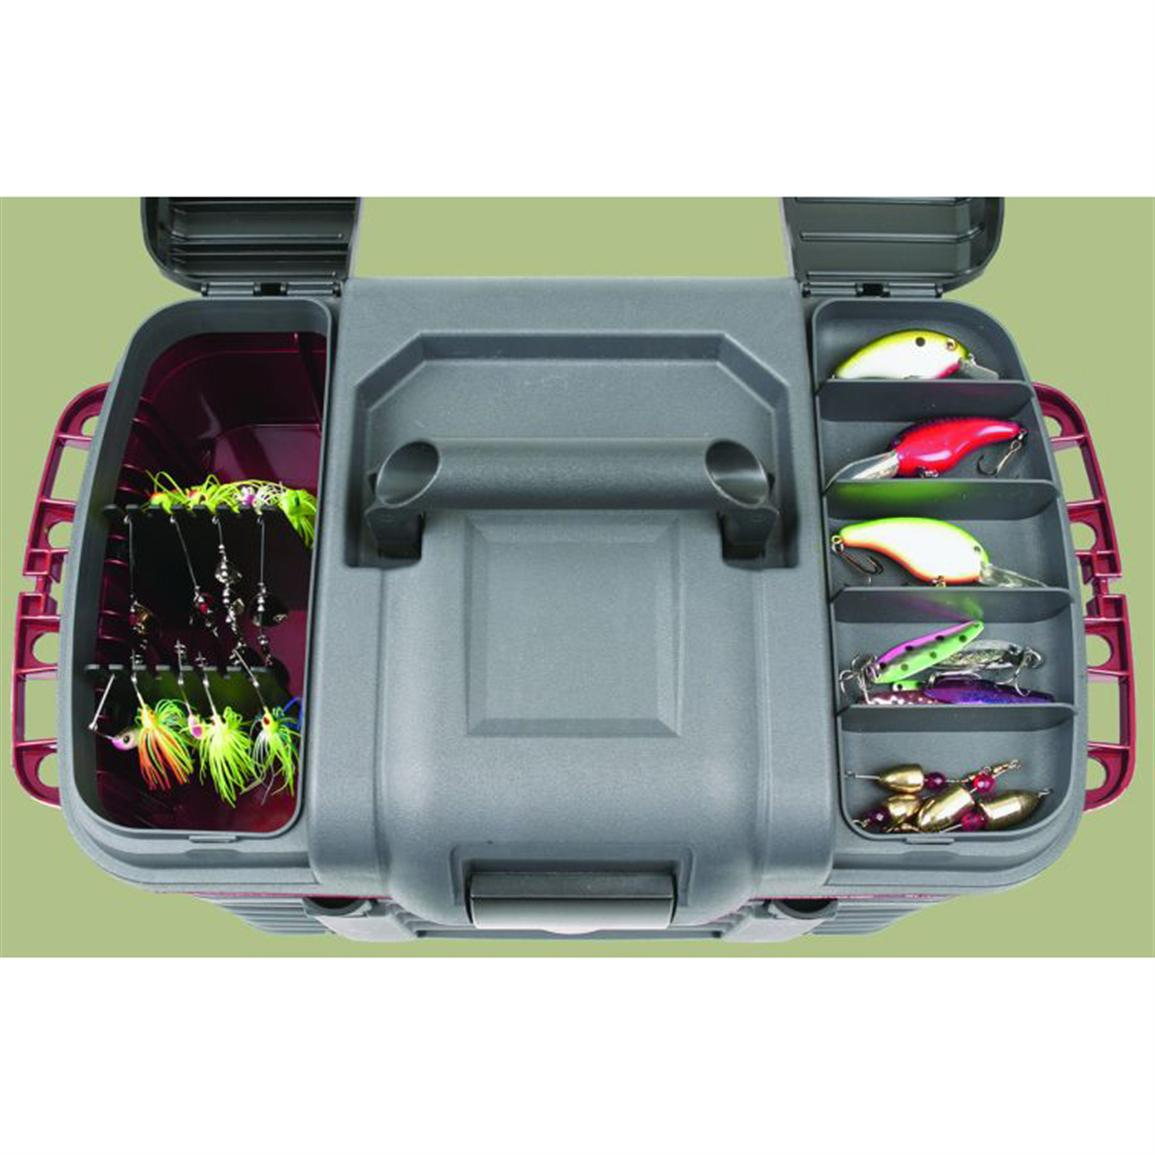 Dual-top lid access doors for terminal tackle and hanging baits